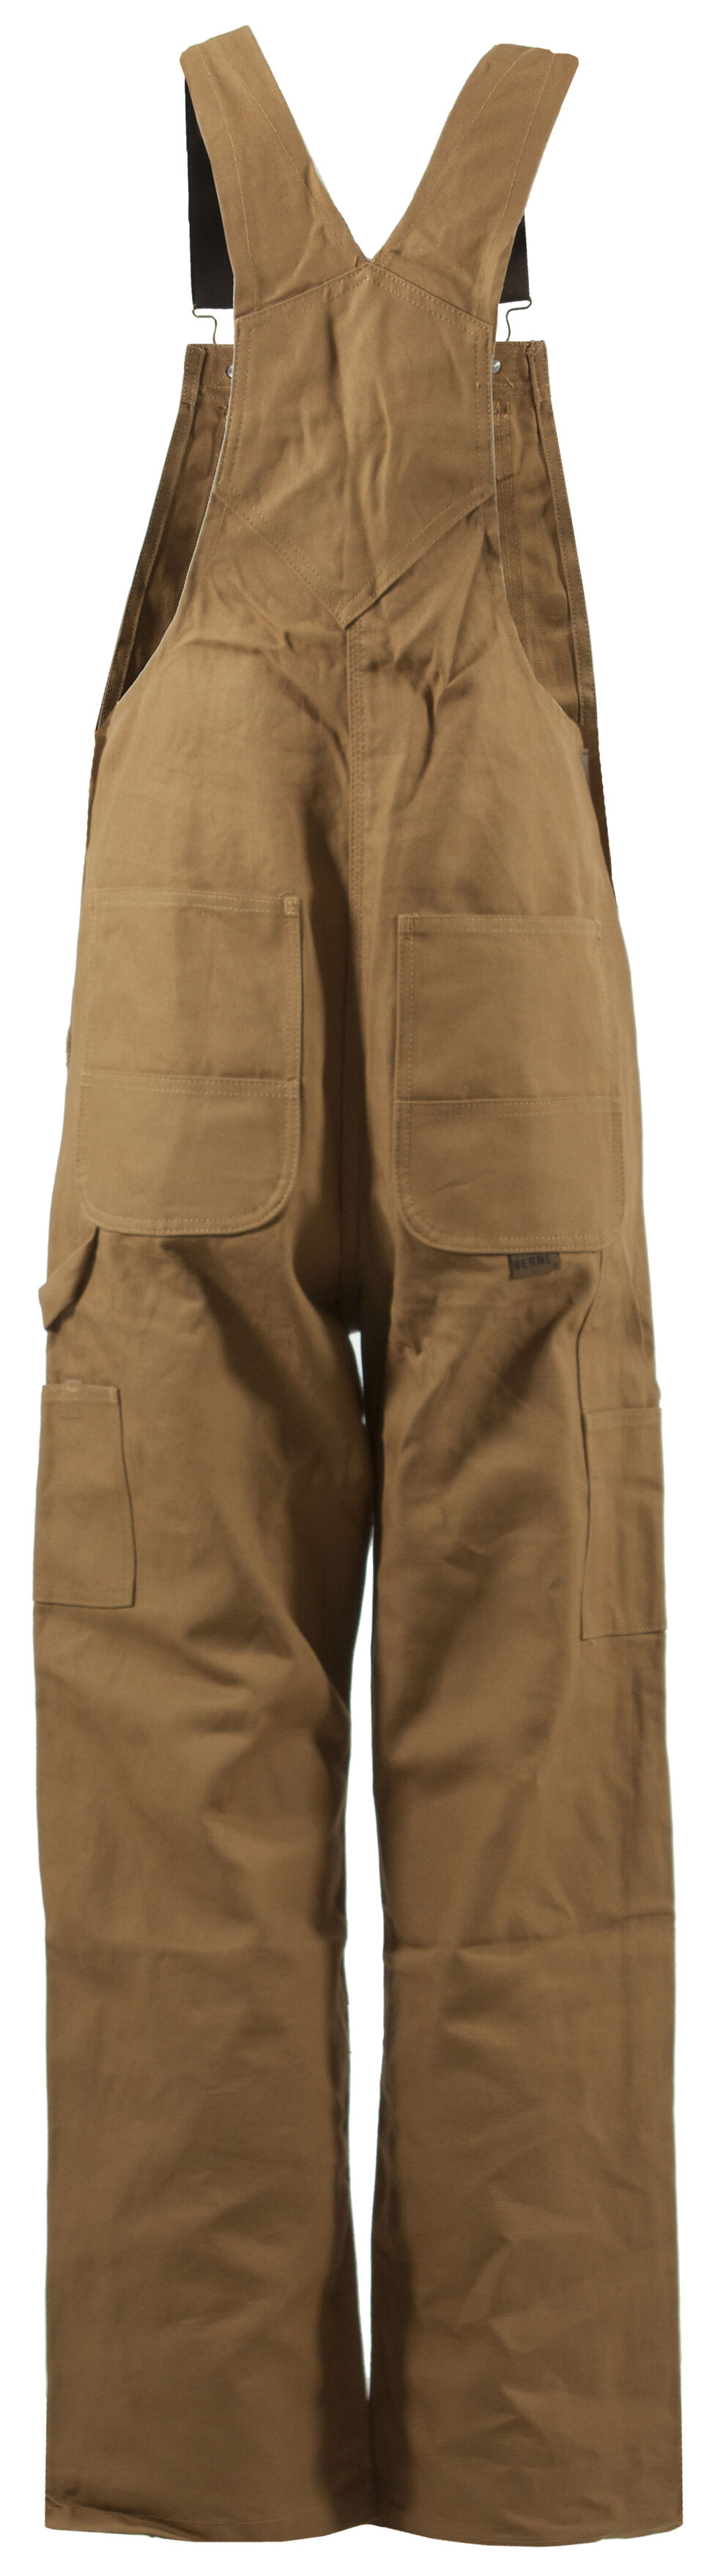 Berne Men's Original Unlined Duck Bib Overalls - Tall, Brown, hi-res